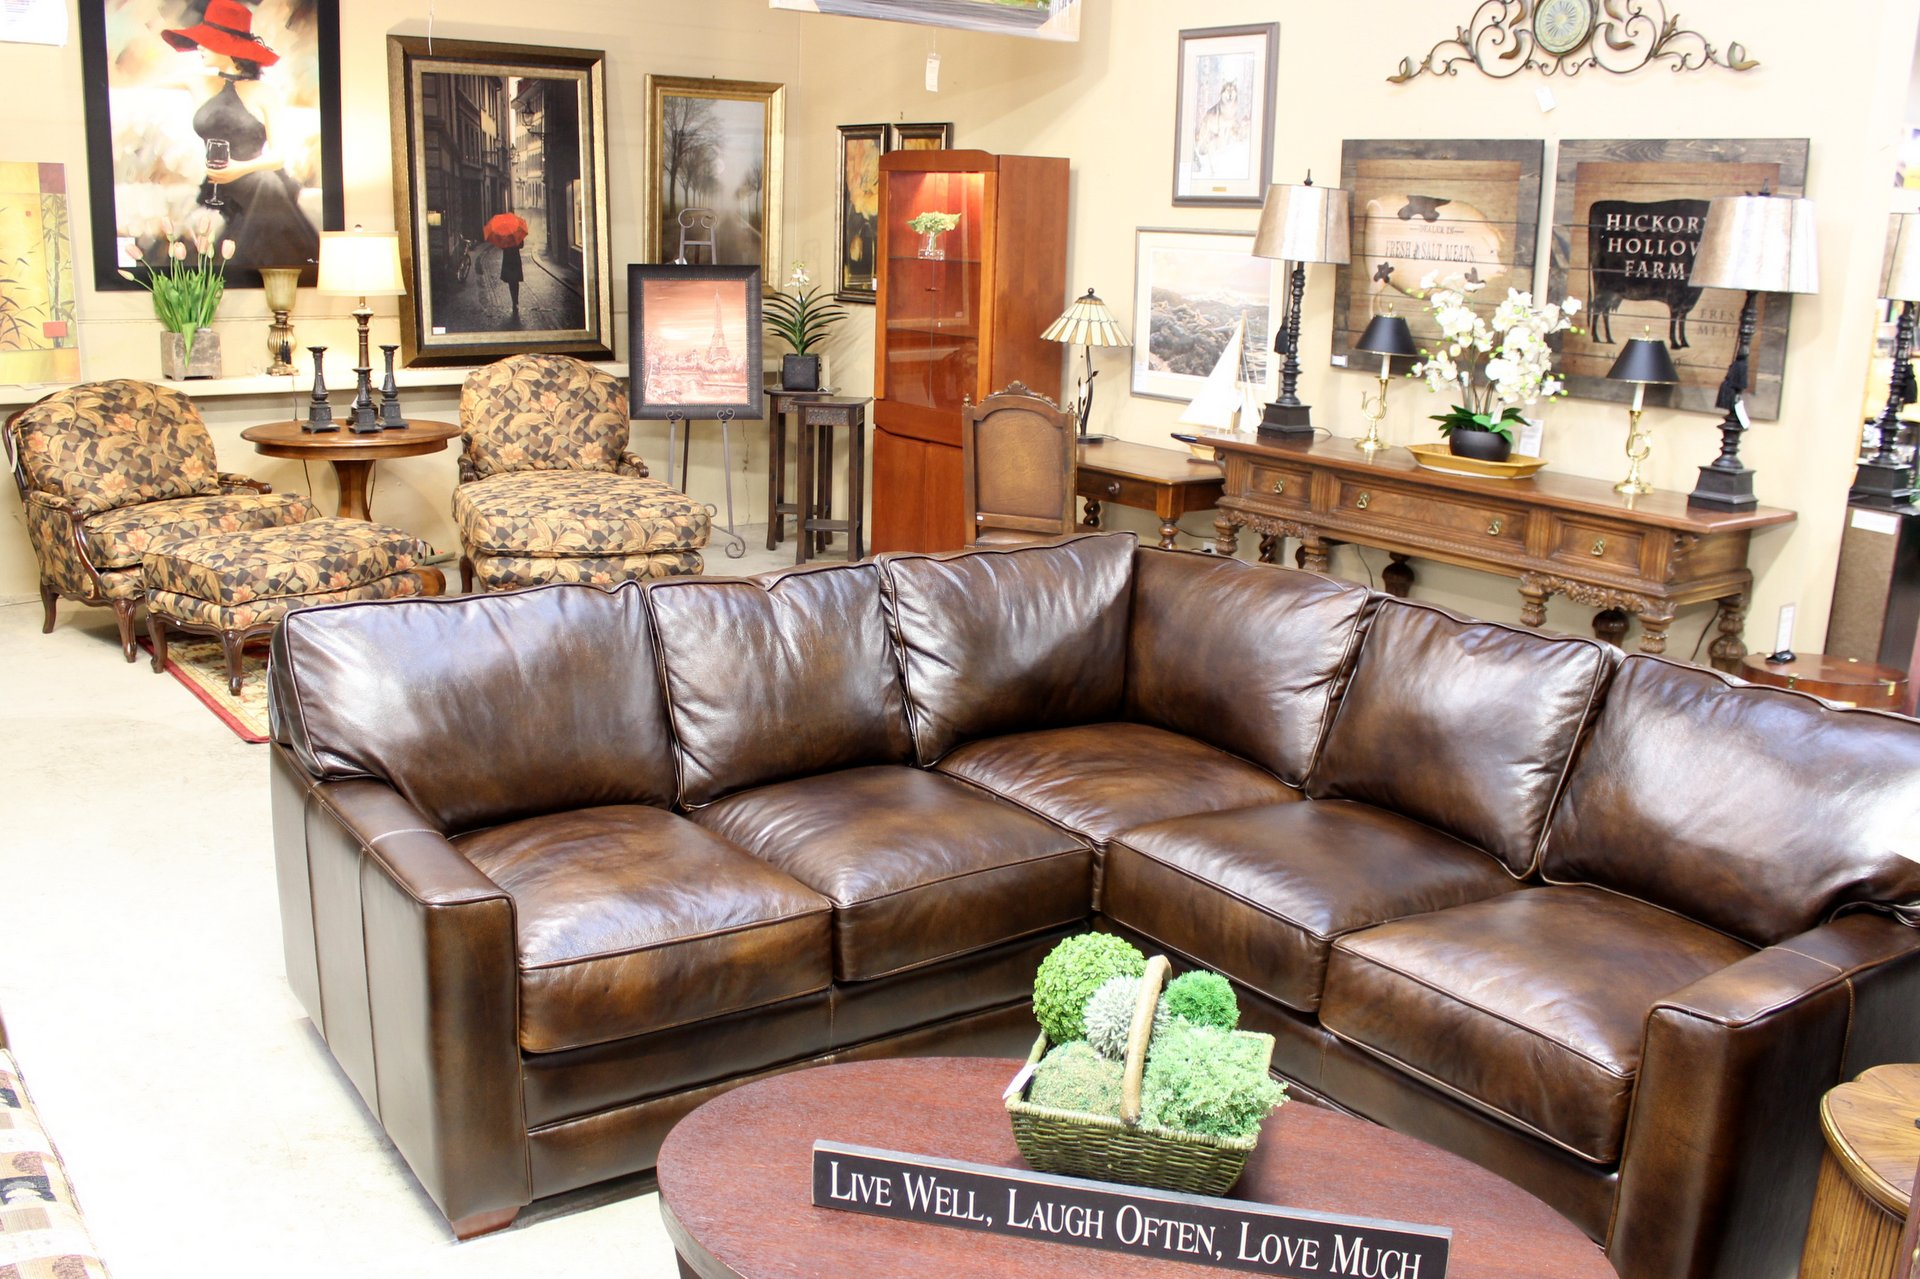 Save 40-80% on Quality Like-New Furnishings